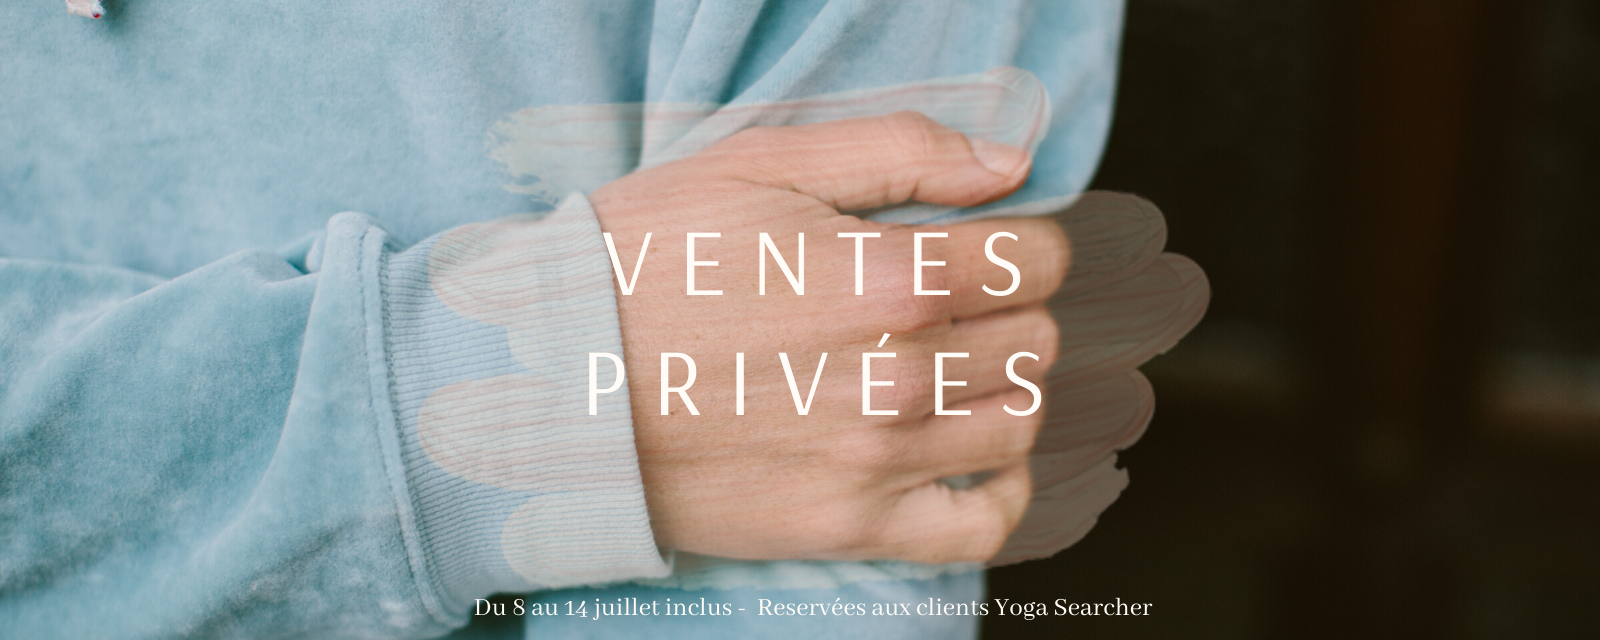 Ventes privées Yoga Searcher